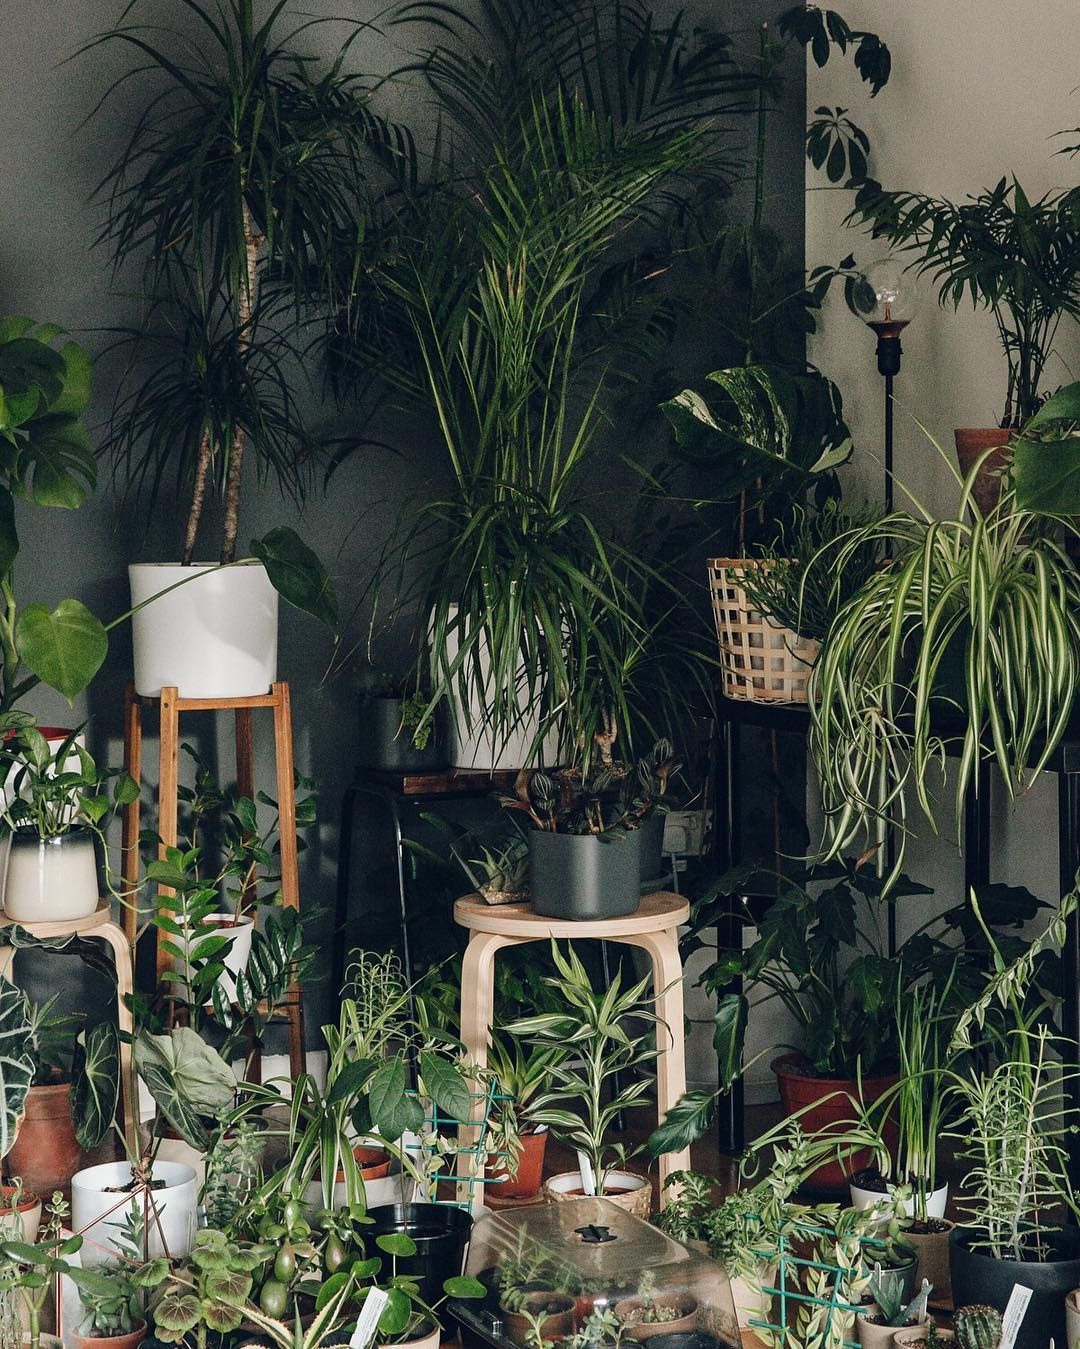 Plants Inside Rooms: Keeping Warm By Snuggling Together.